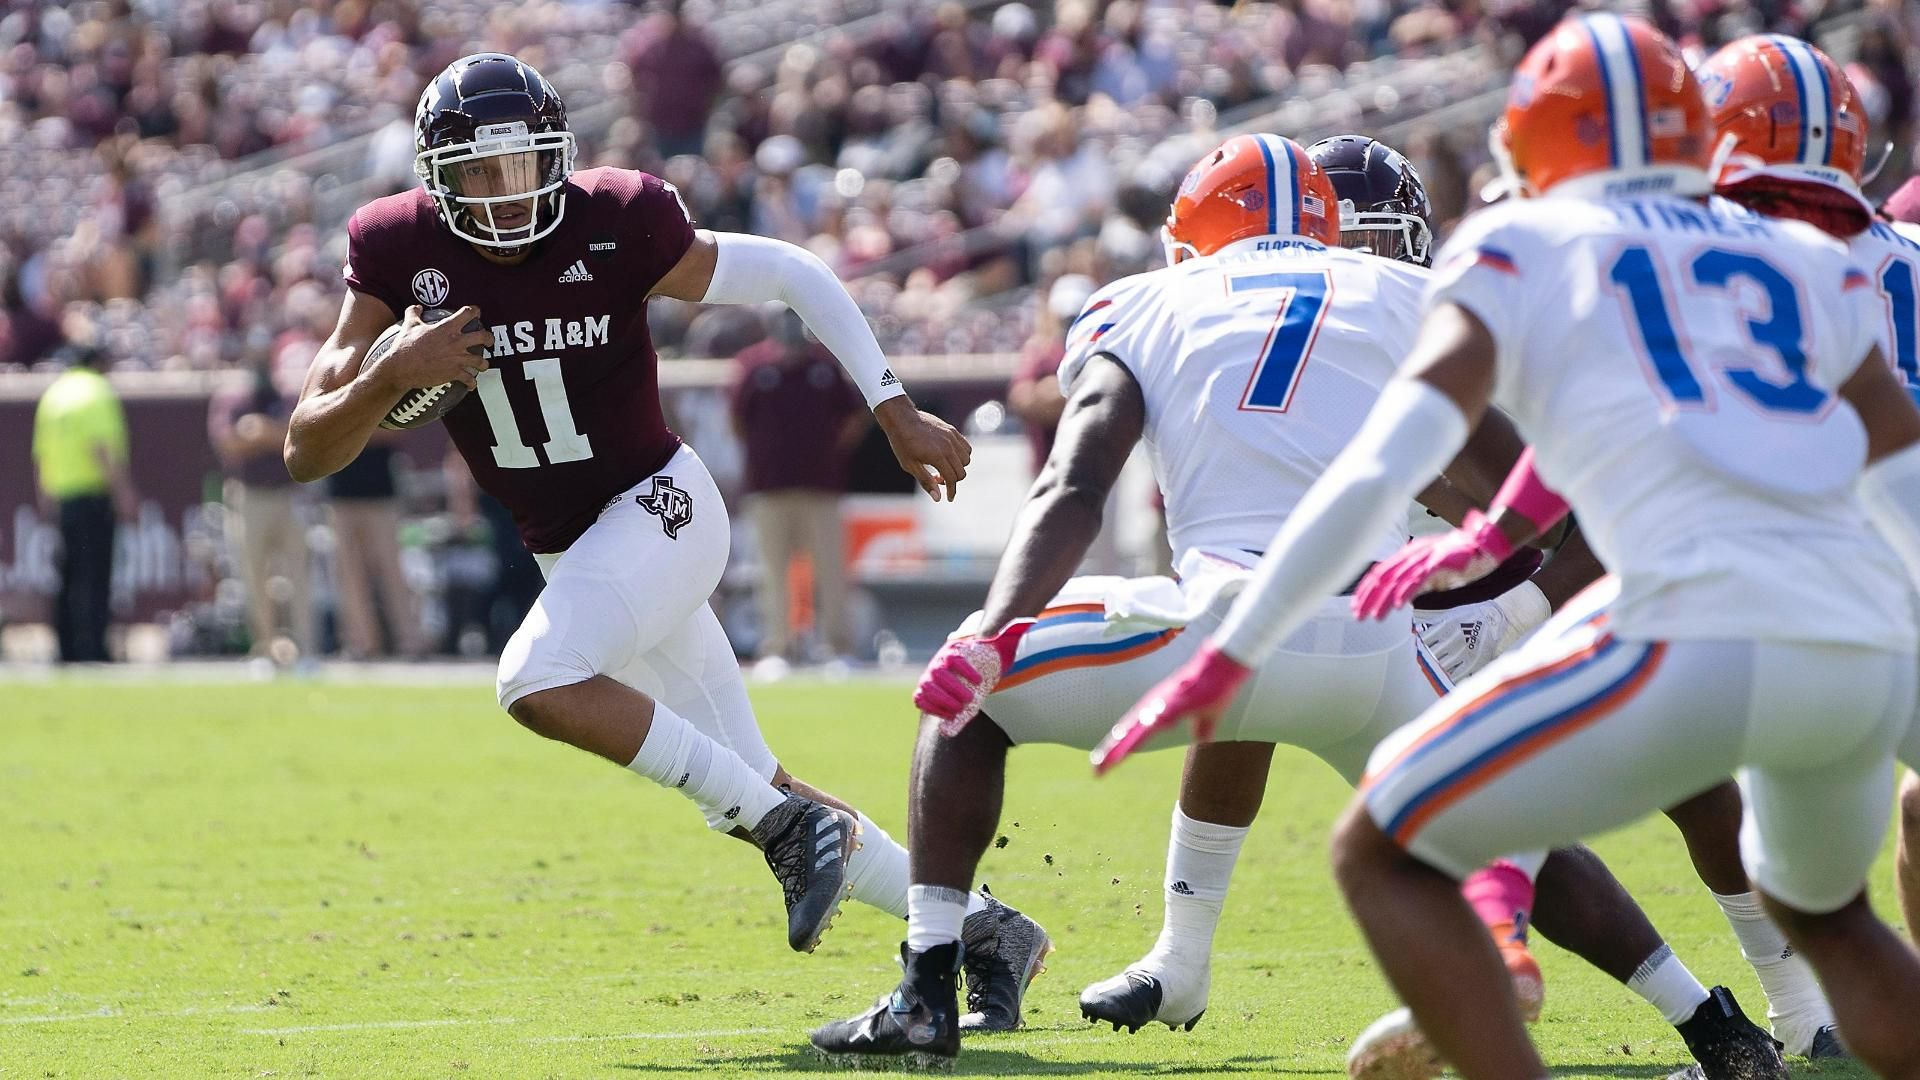 Texas A&M's Mond has one of his best games yet